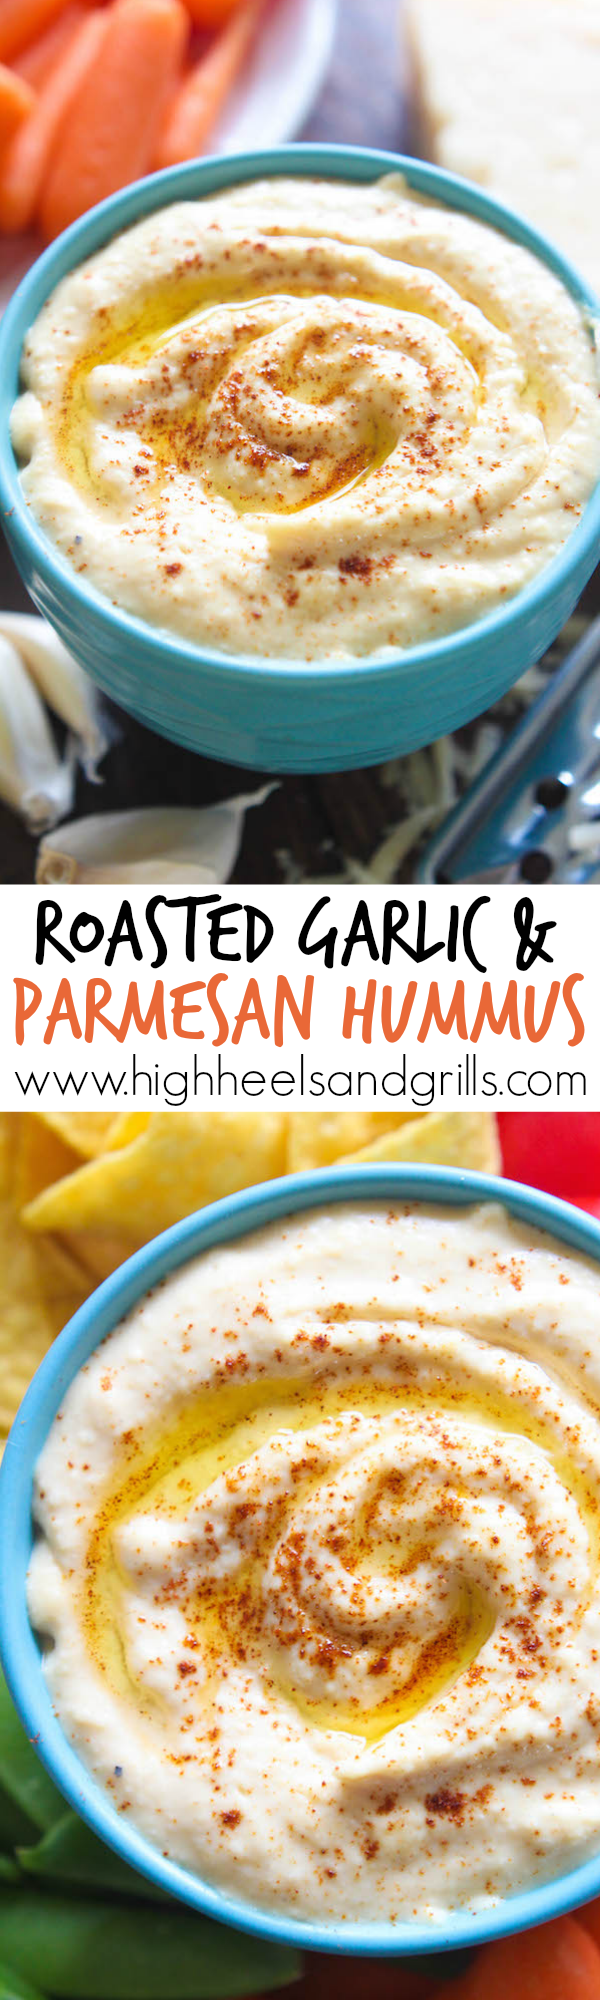 Roasted Garlic and Parmesan Hummus Collage